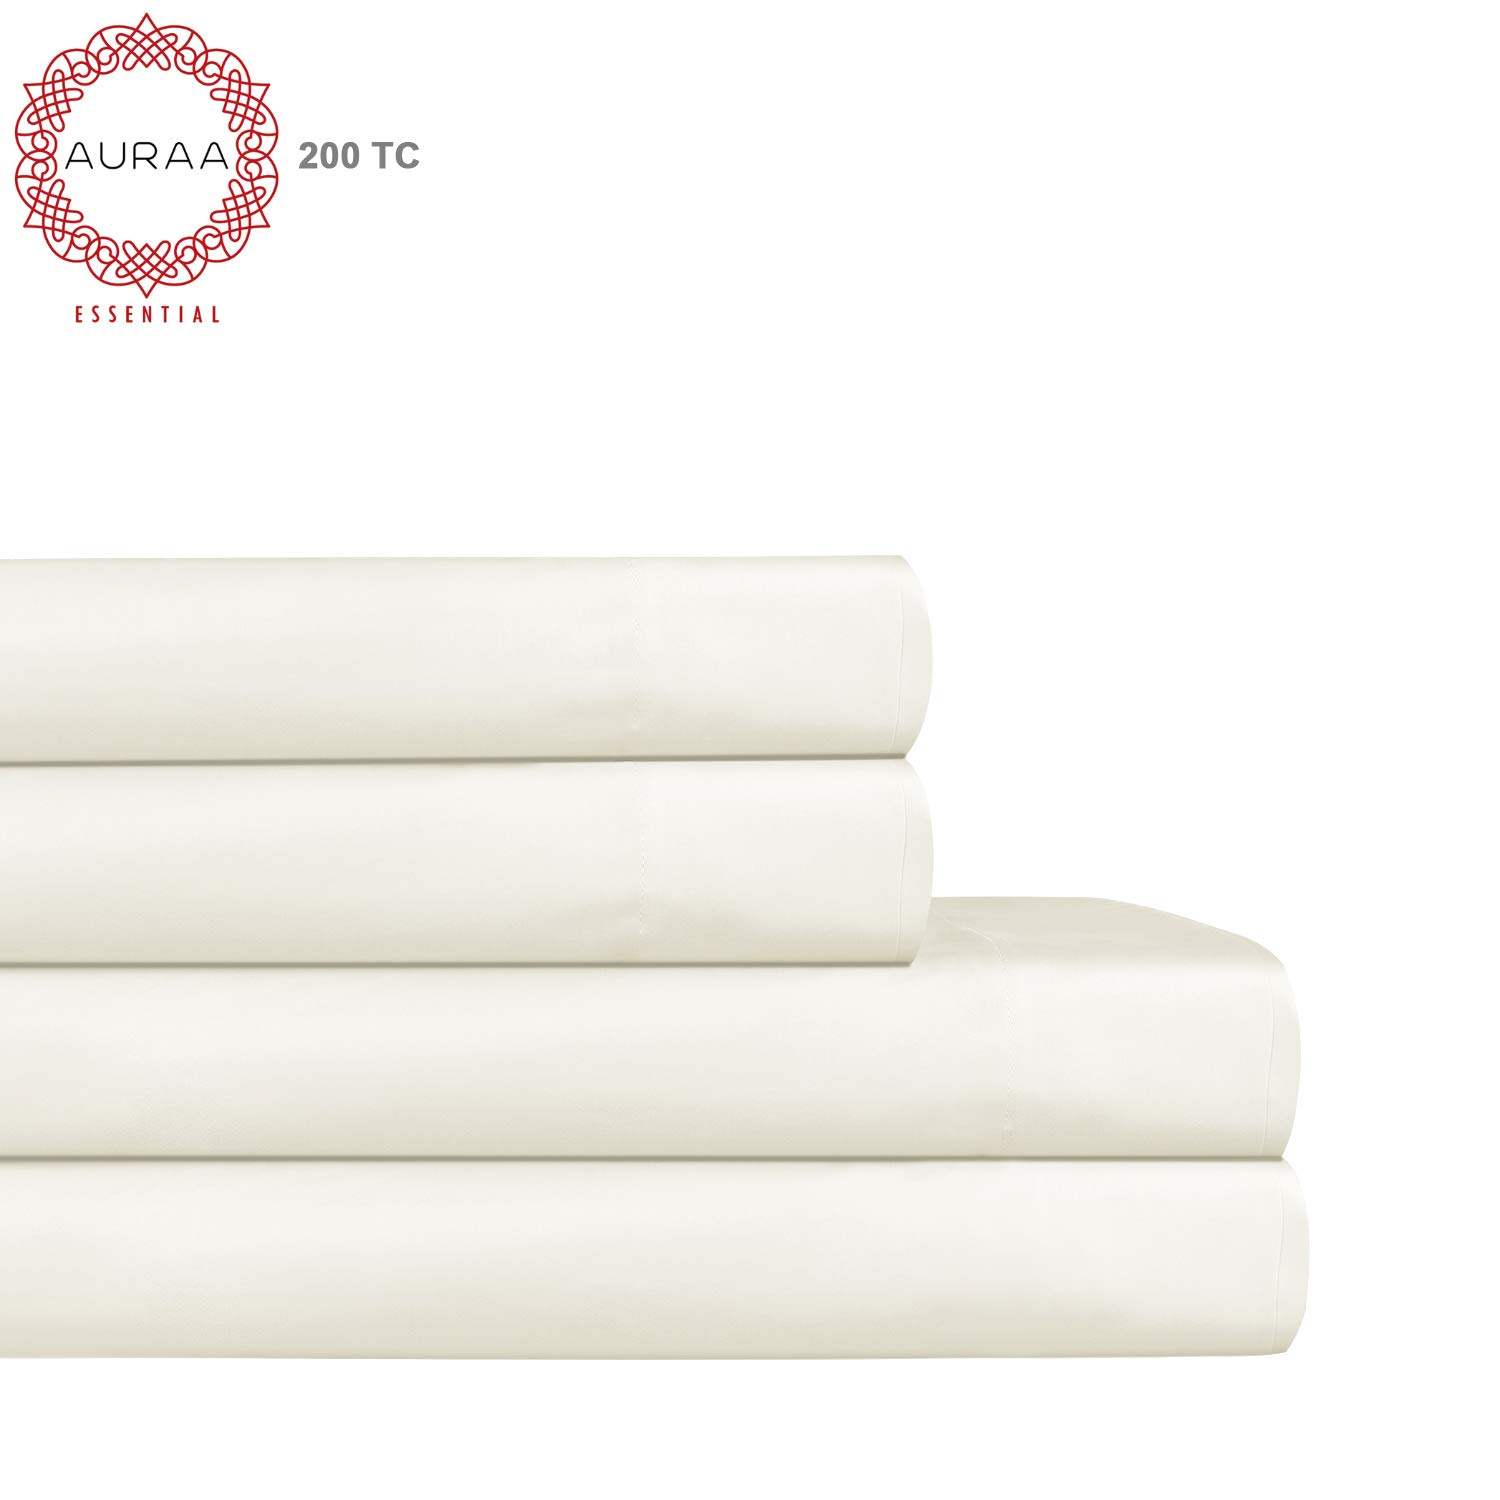 AURAA ESSENTIAL 100/% Cotton Peached Percale Sheet Set 4 Piece Set Feather Soft Queen Sheets DEEP Pocket,Big Sale Days,Oeko-TEX Certified White GHCL